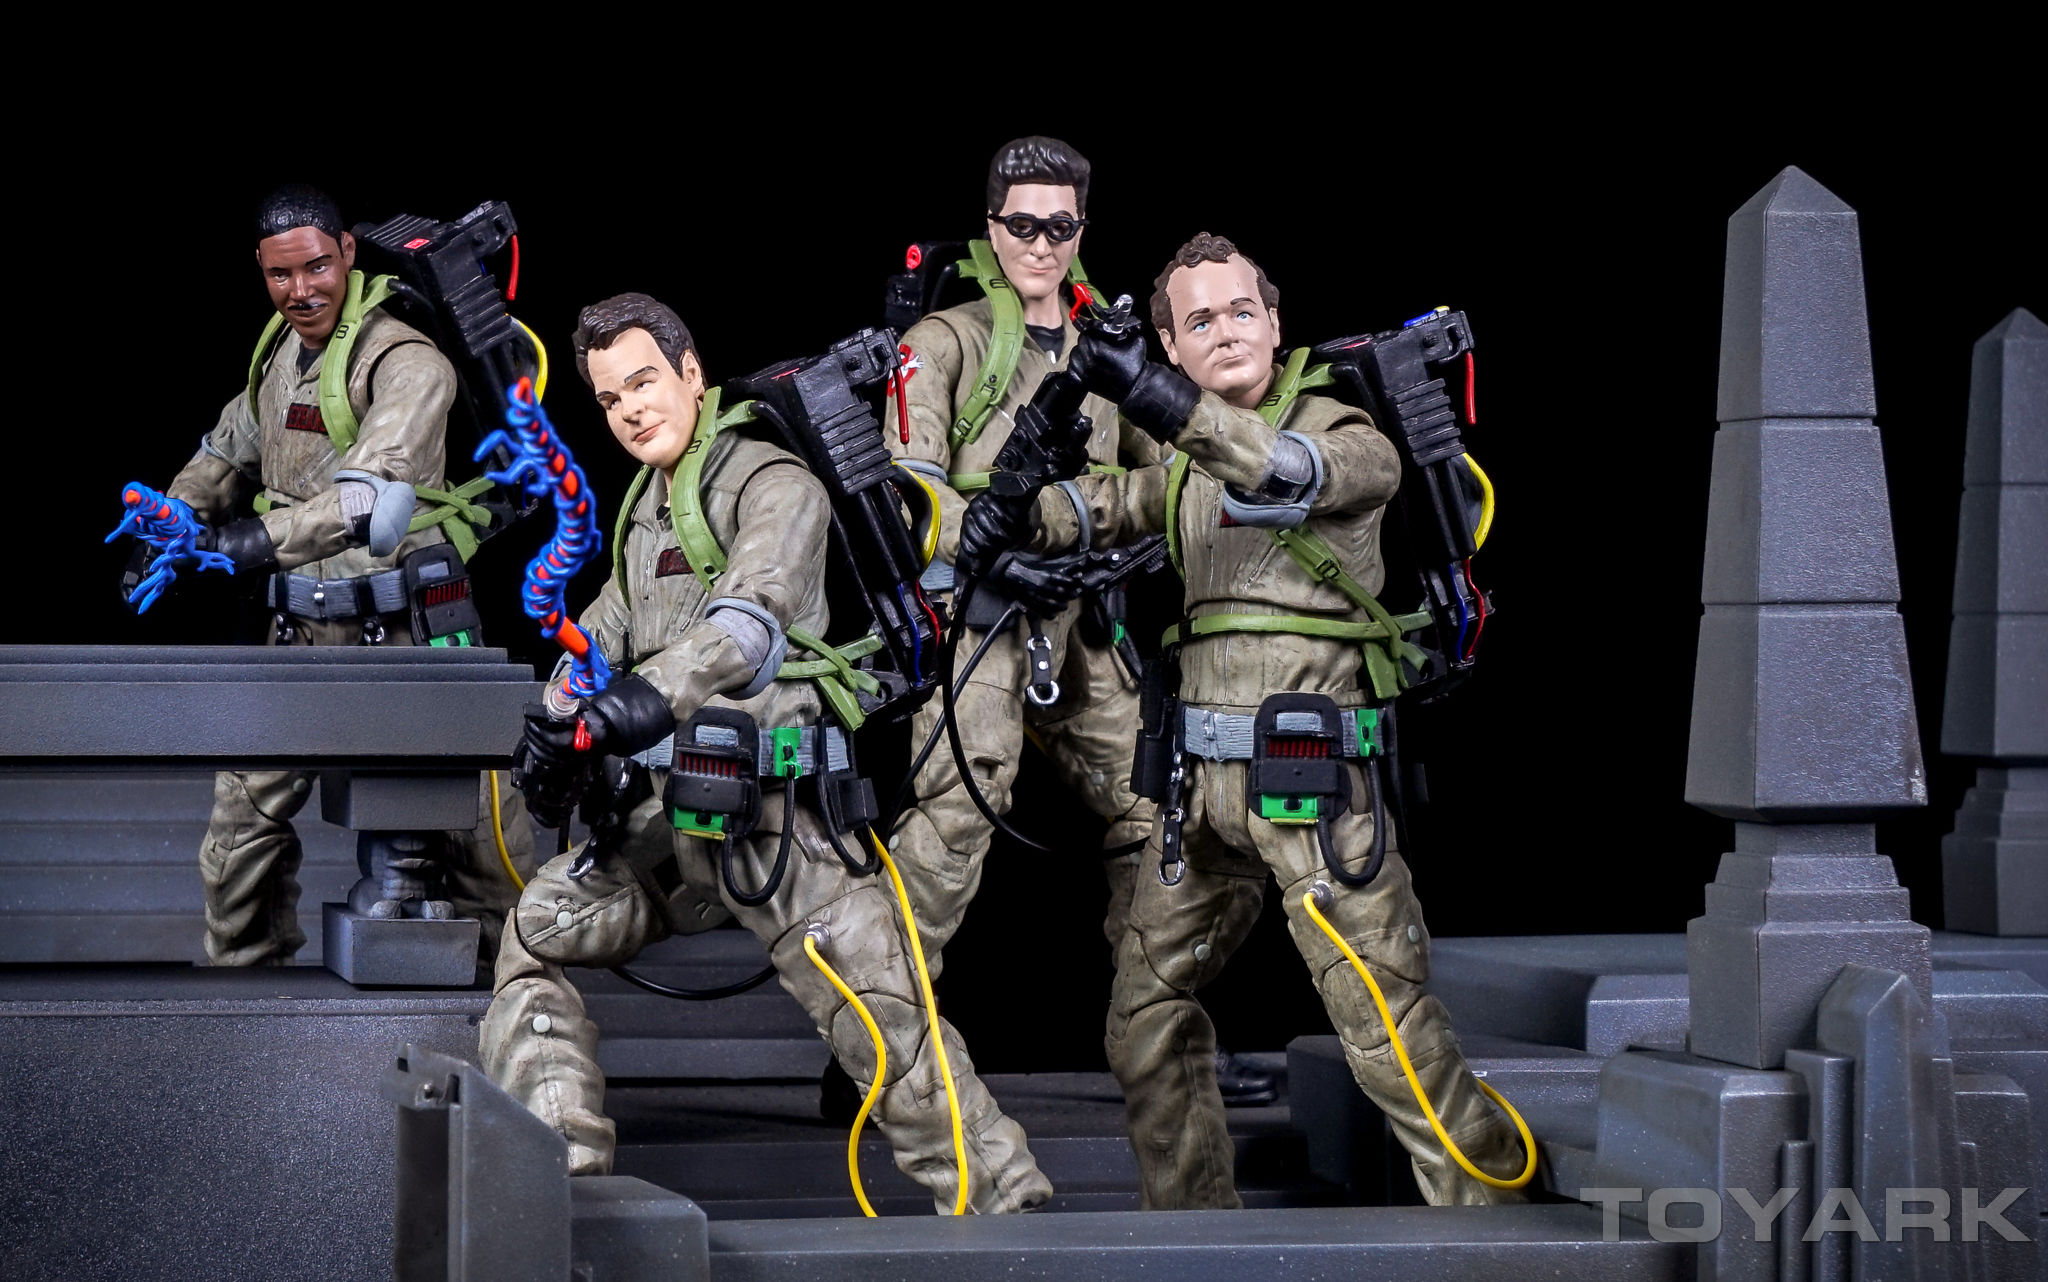 http://news.toyark.com/wp-content/uploads/sites/4/2016/05/DST-Ghostbusters-Select-Figures-065.jpg